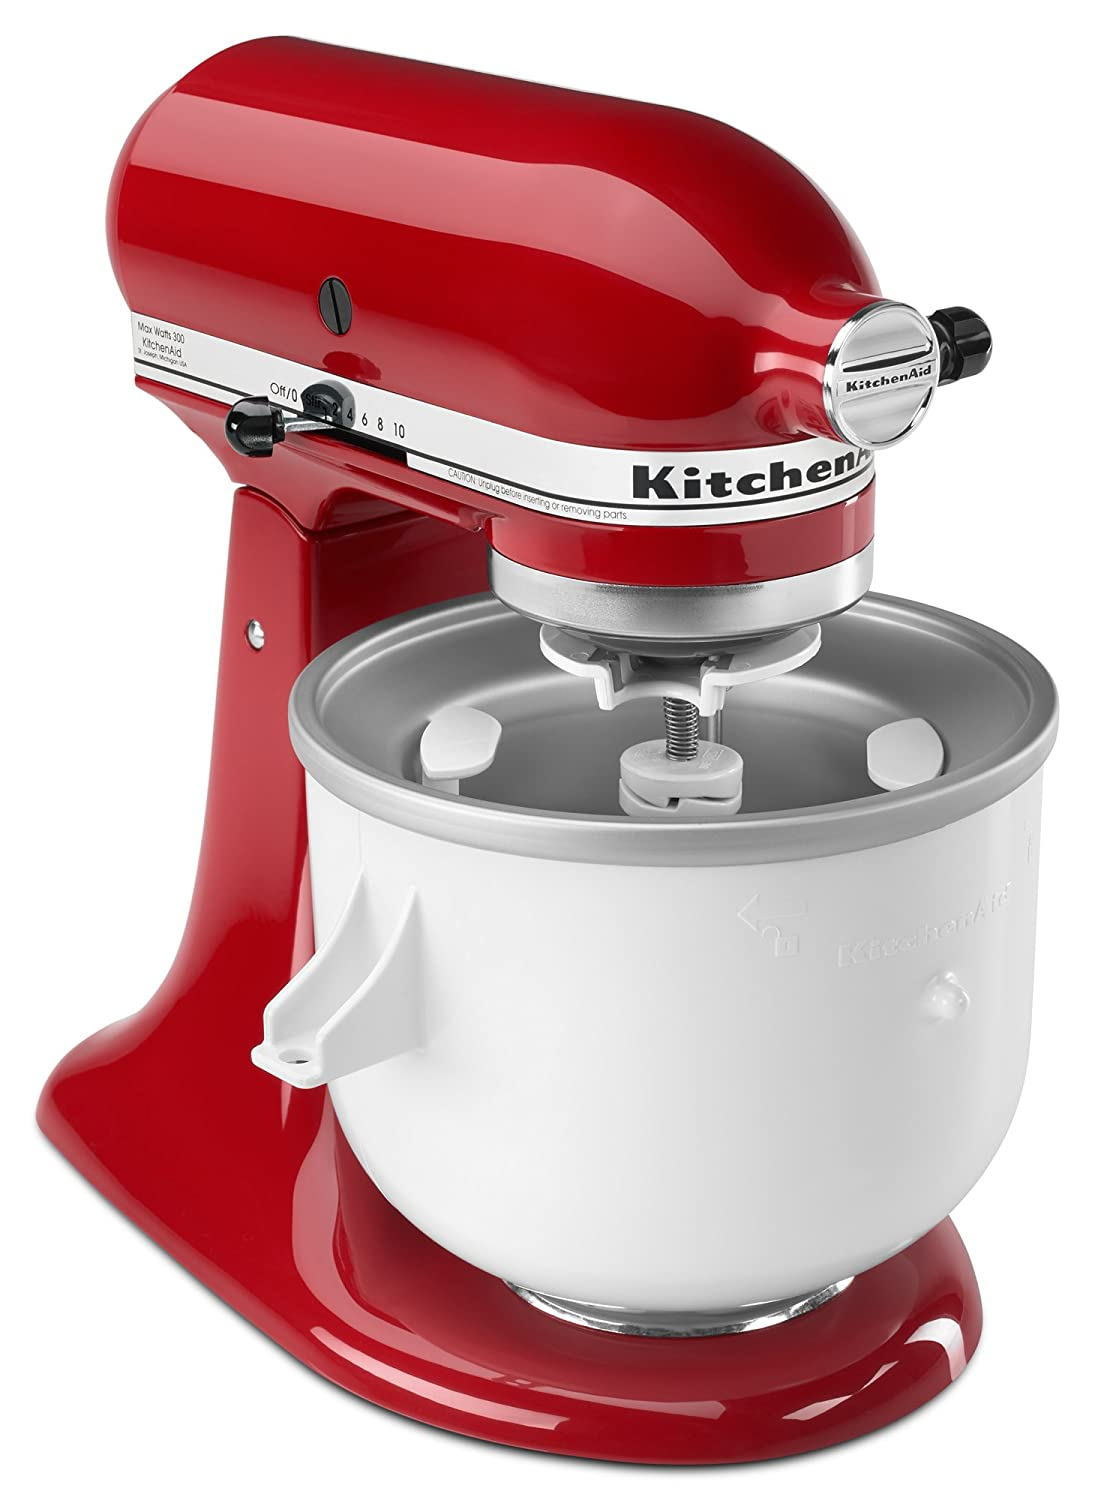 KitchenAid KICA0WH Ice Cream Maker Attachment review 2018